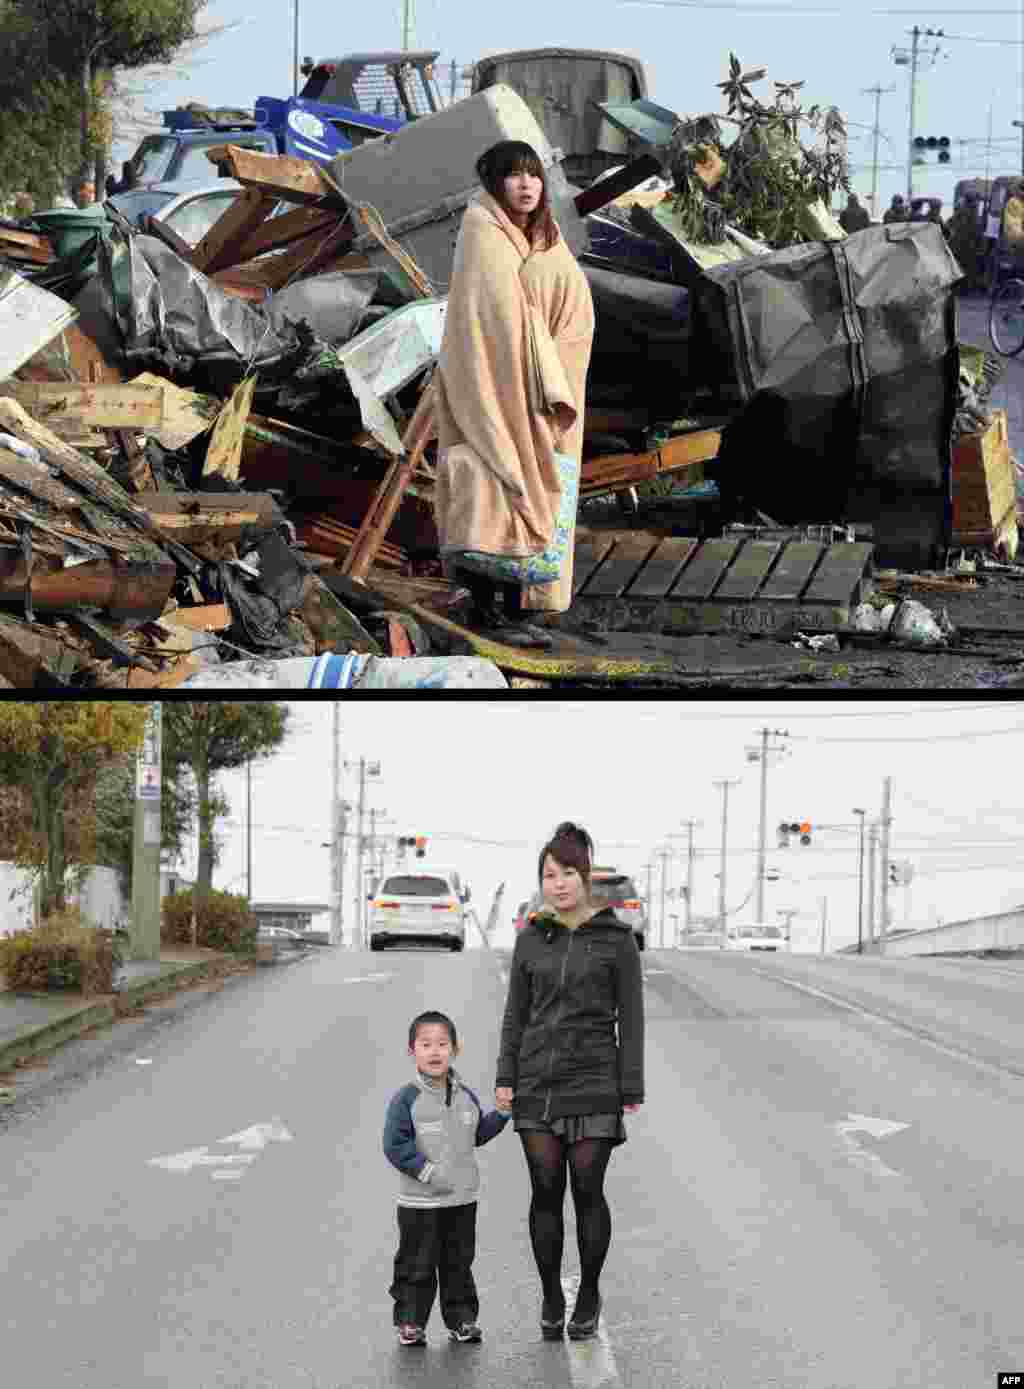 On top, Yuko Sugimoto standing in front of debris looking for her son in the tsunami-hit town of Ishinomaki in Miyagi Prefecture on March 13, 2011, and below, with her 5-year-old son Raito on January 27, 2012